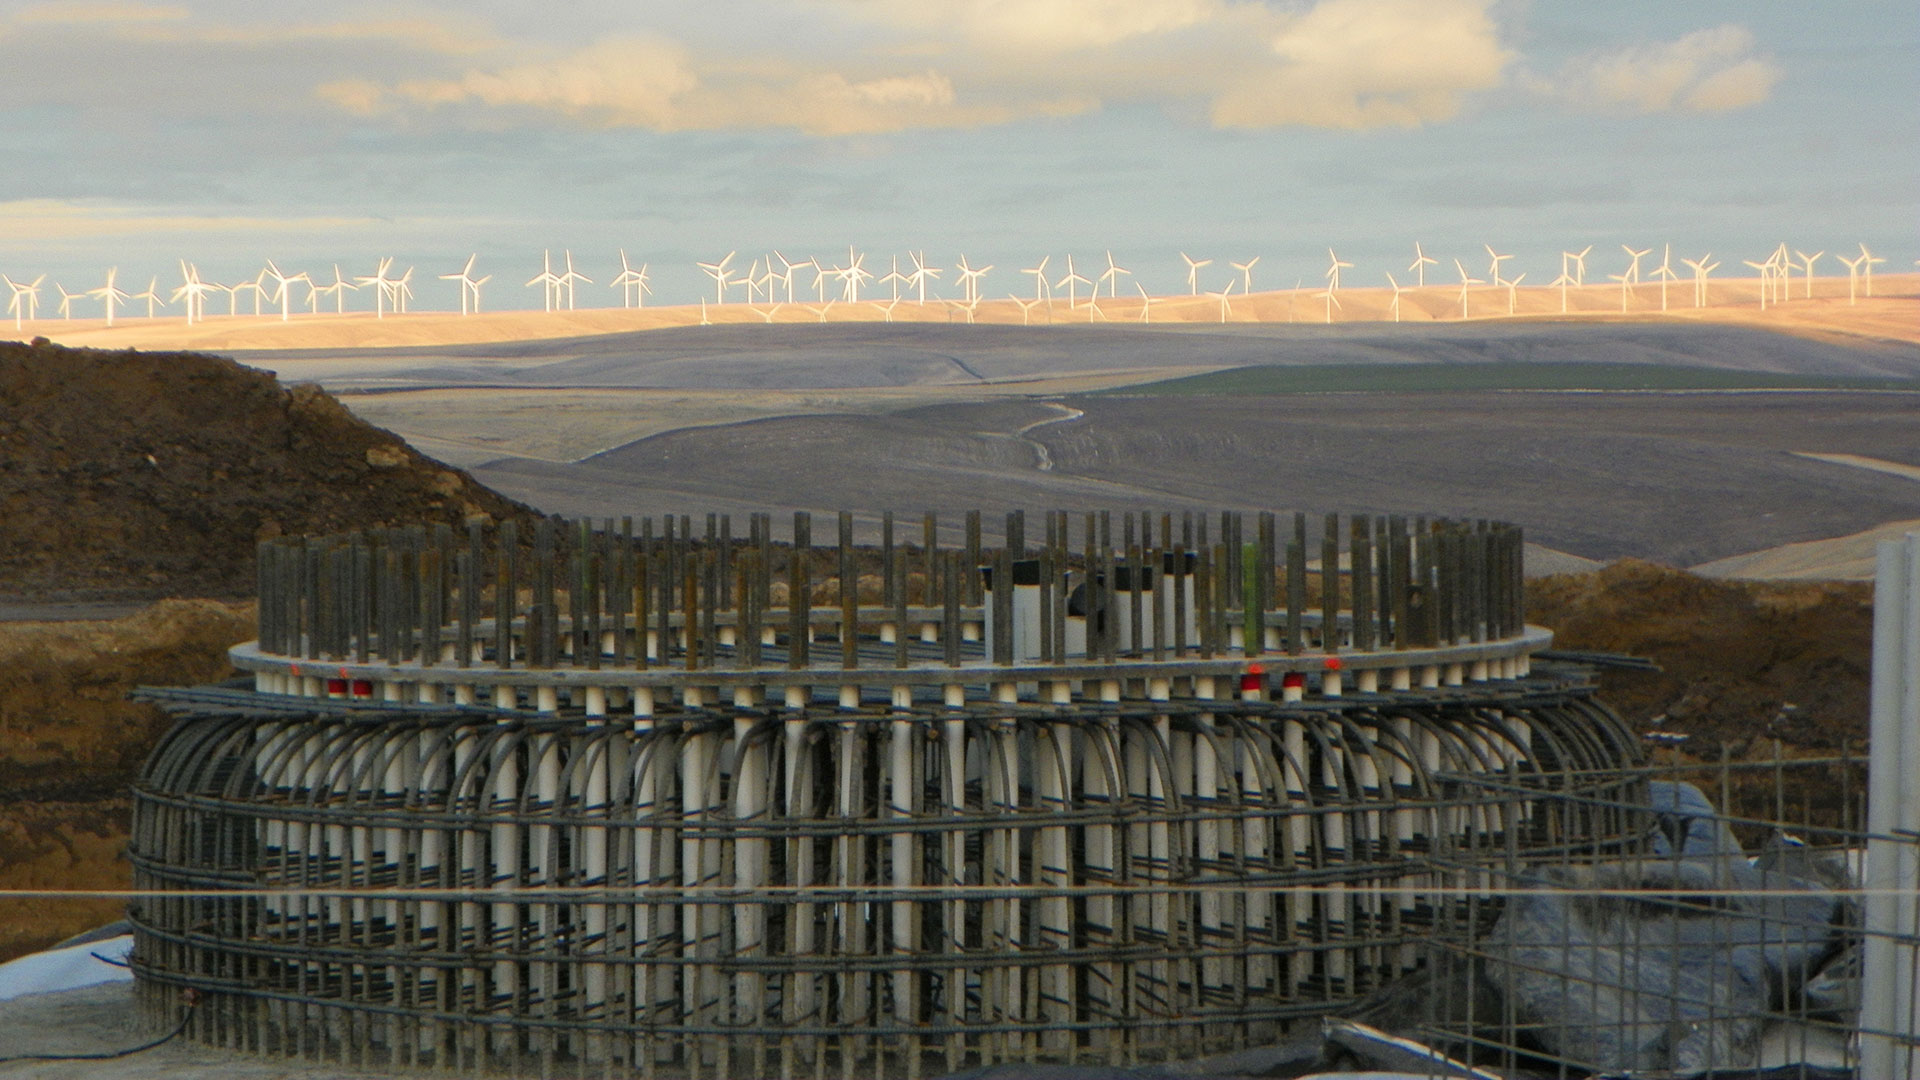 Tucannon River Wind Farm - footing and turbines